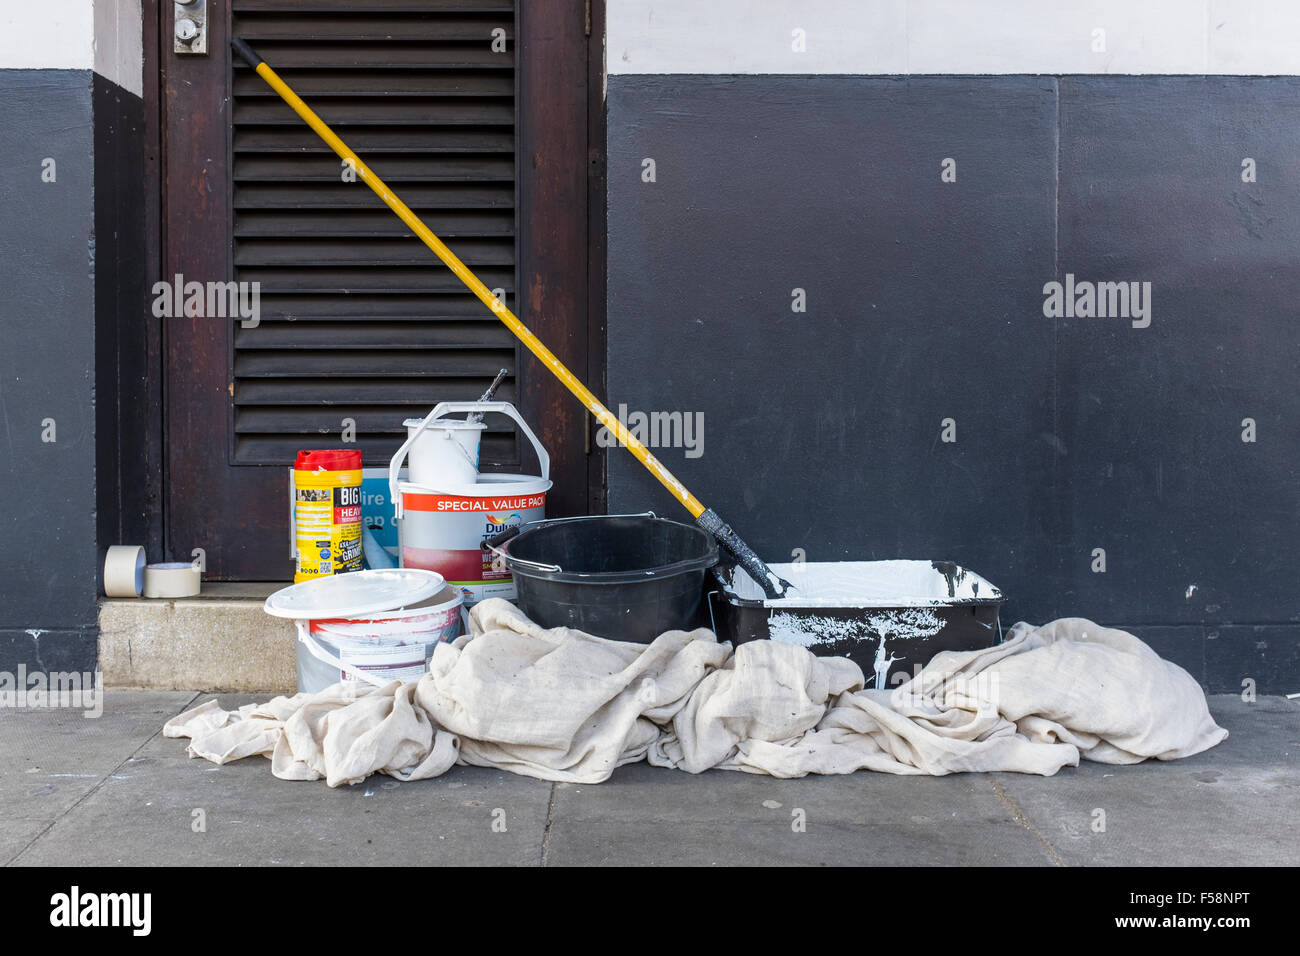 White Paint Pots And A Large Paint Roller All Standing On A Paint Sheet  Next To An Outside Wall On The Pavement In The Street